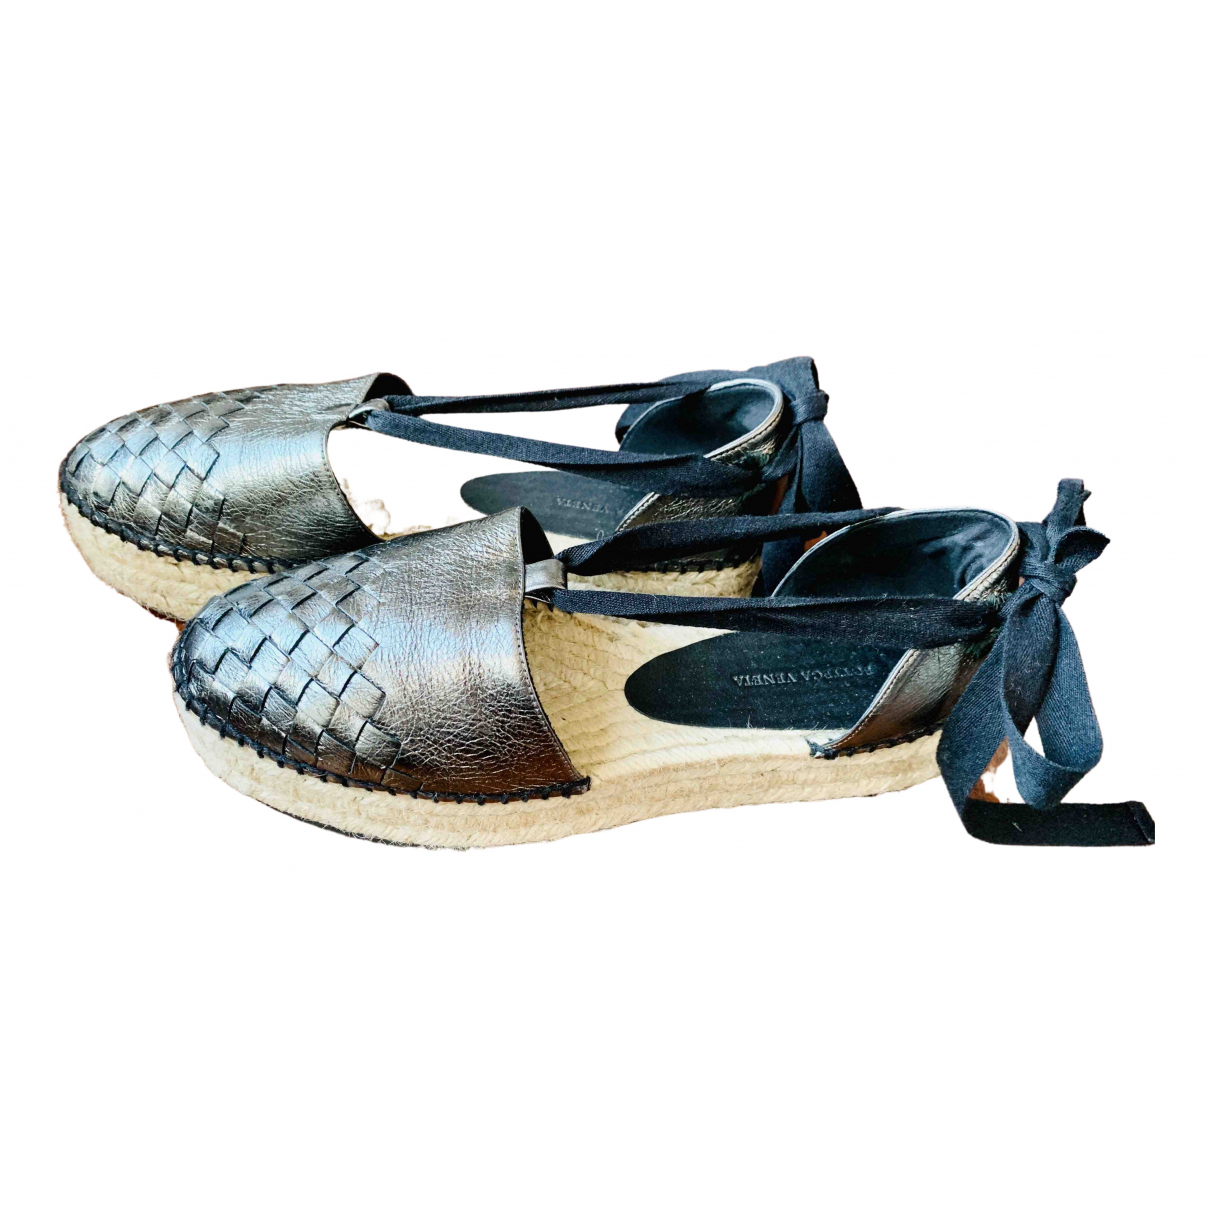 Bottega Veneta \N Espadrilles in  Metallic Leder